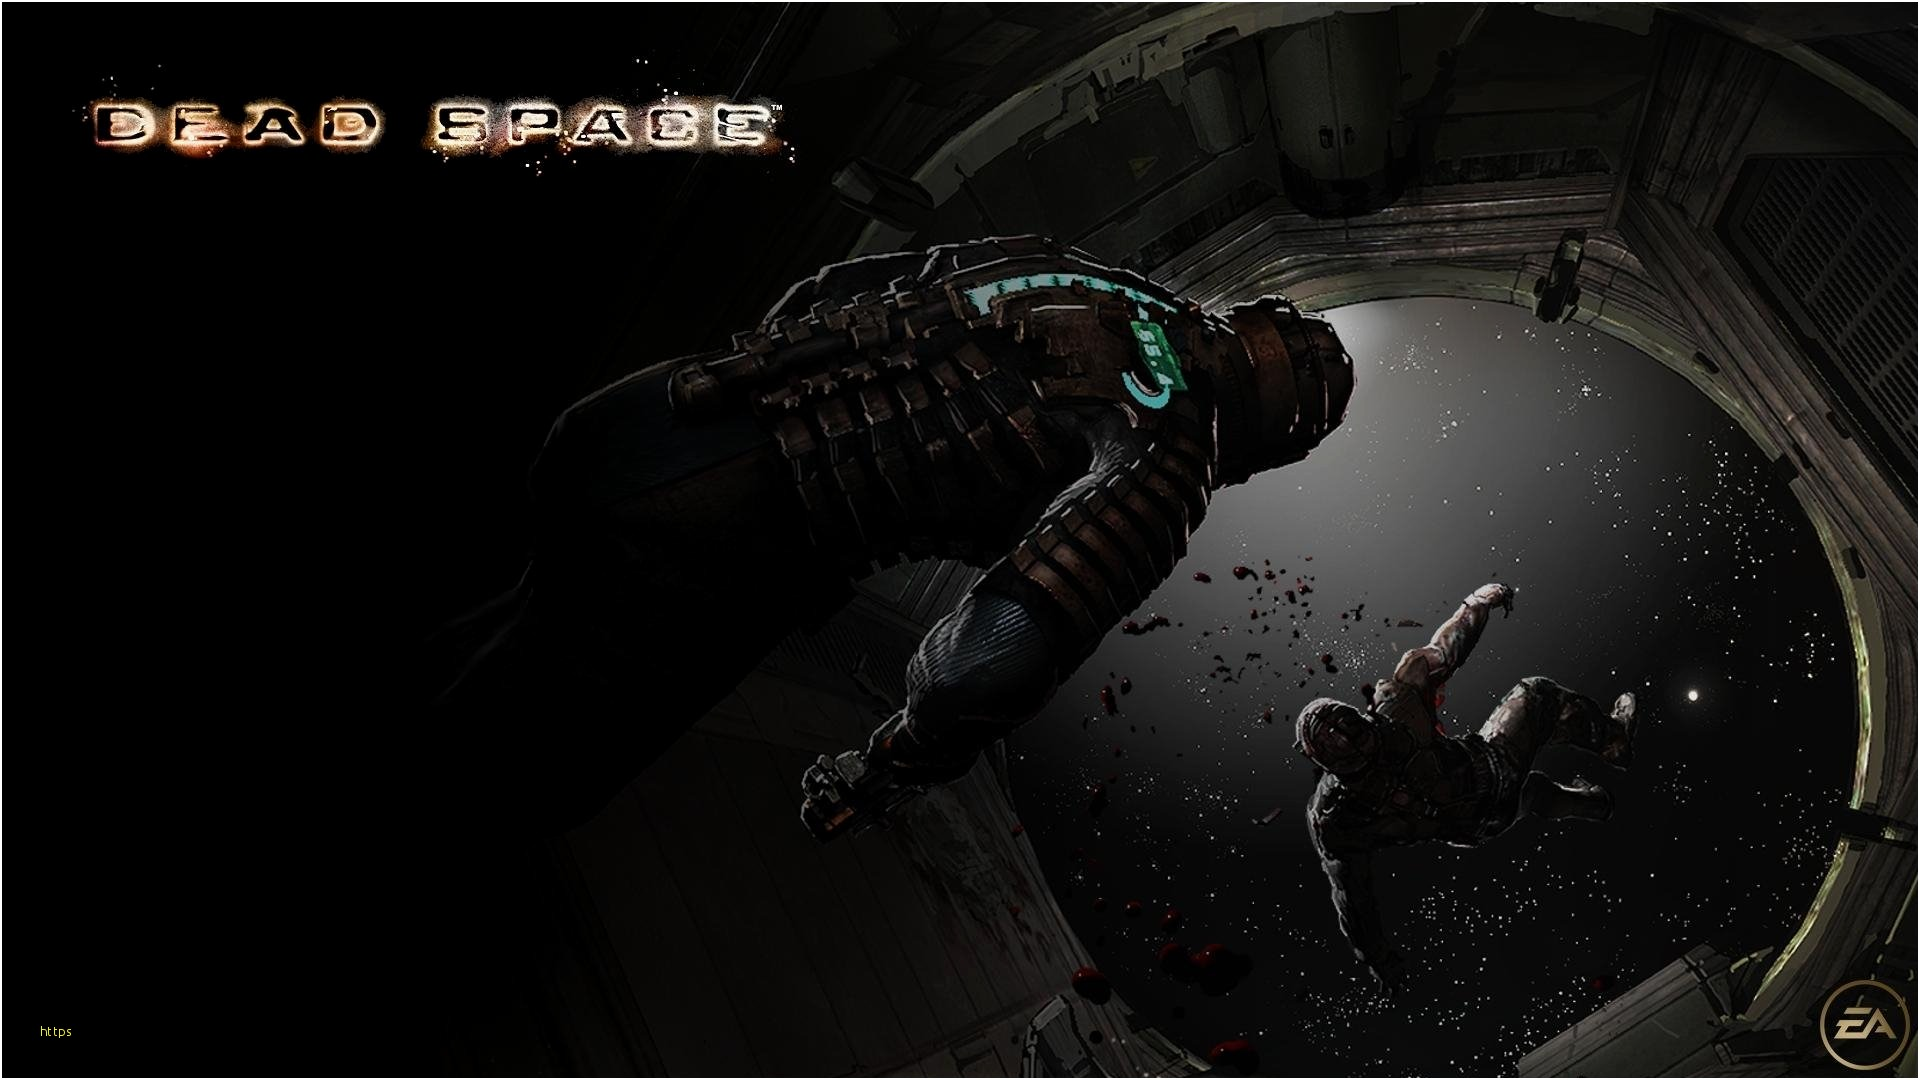 Game Wallpapers Hd Lovely Mixed Gaming Wallpapers - Dead Space 1 Helmet , HD Wallpaper & Backgrounds